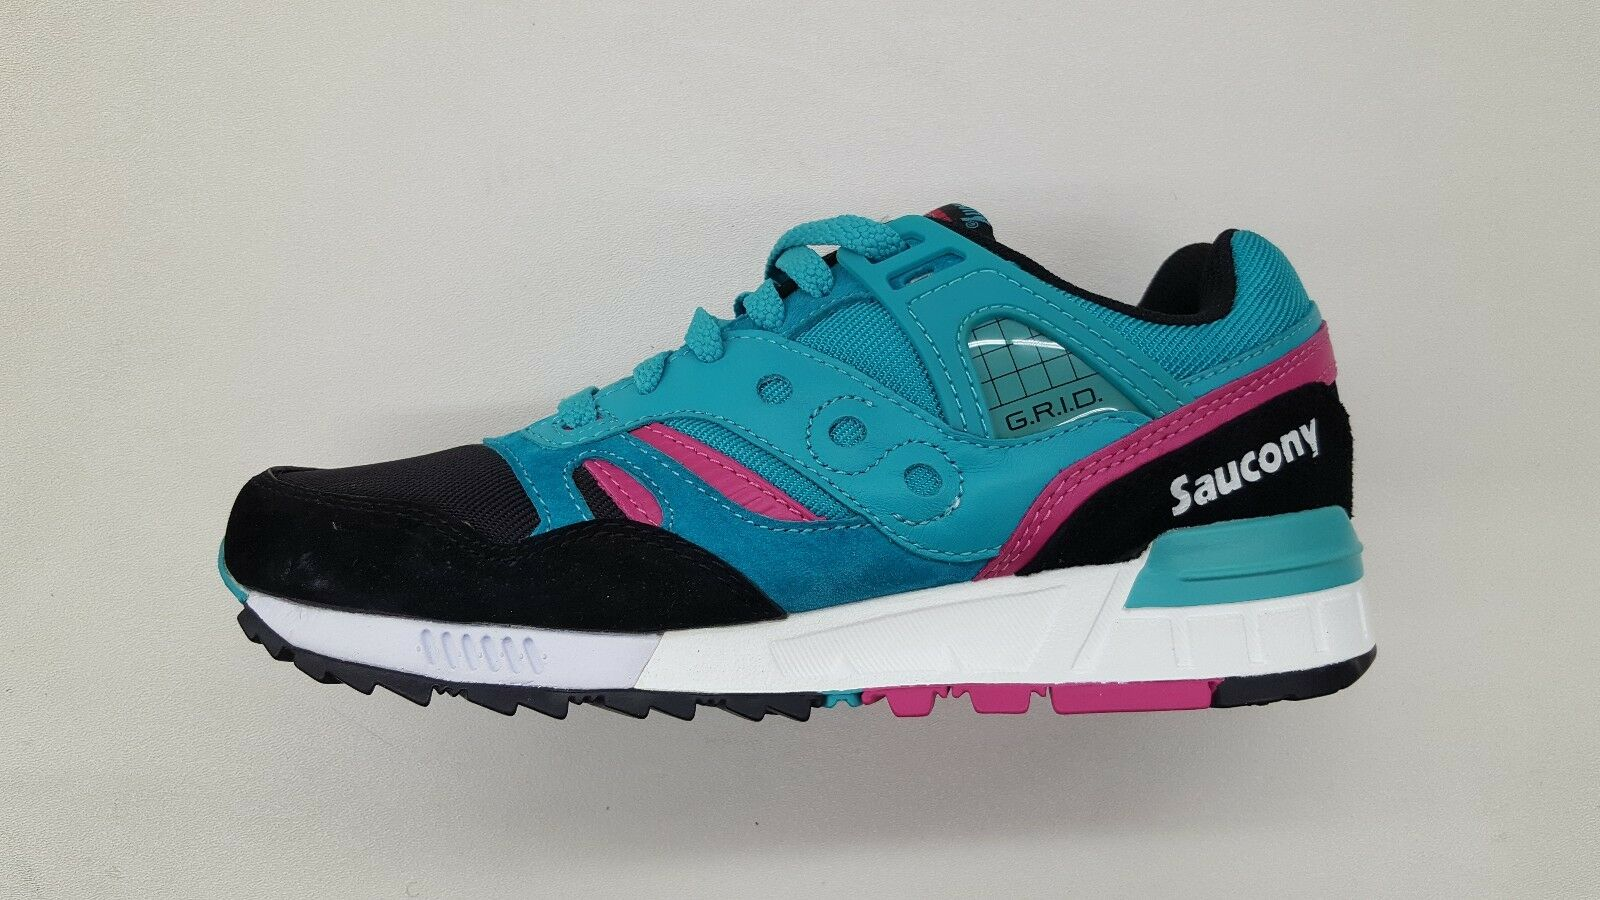 Saucony Grid SD Games Pack Blue Pink Black Men Running Sneakers S70164-2 1704-04